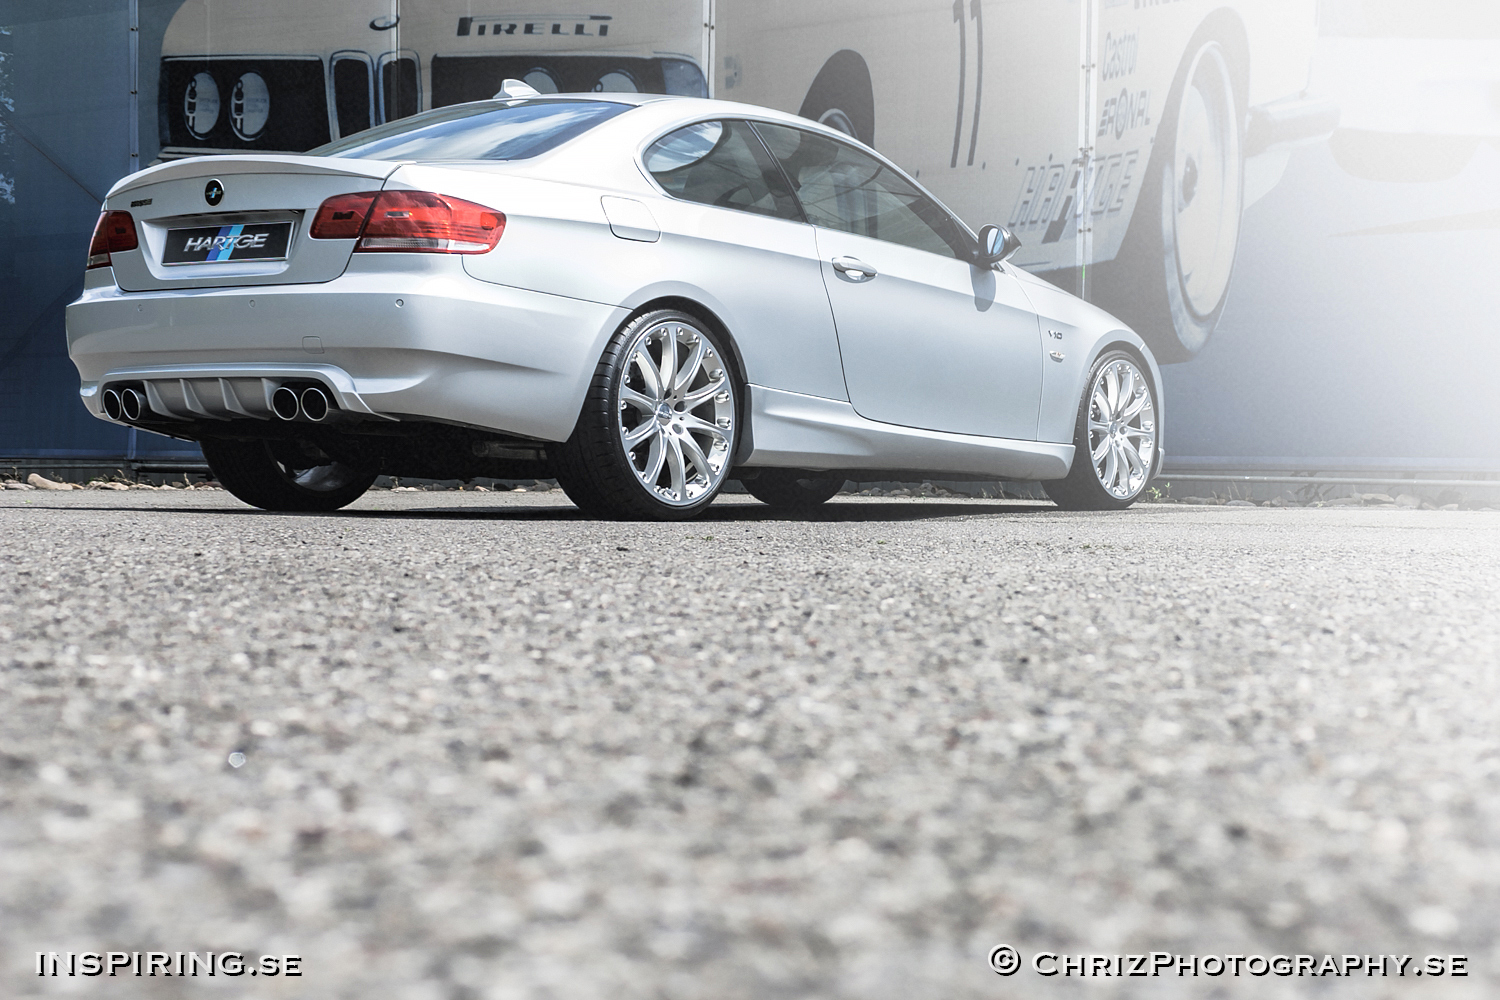 Inspiring.se_OUTTHERE_copyright_ChrizPhotography.se_648_BMW_Hartge_M3.jpg